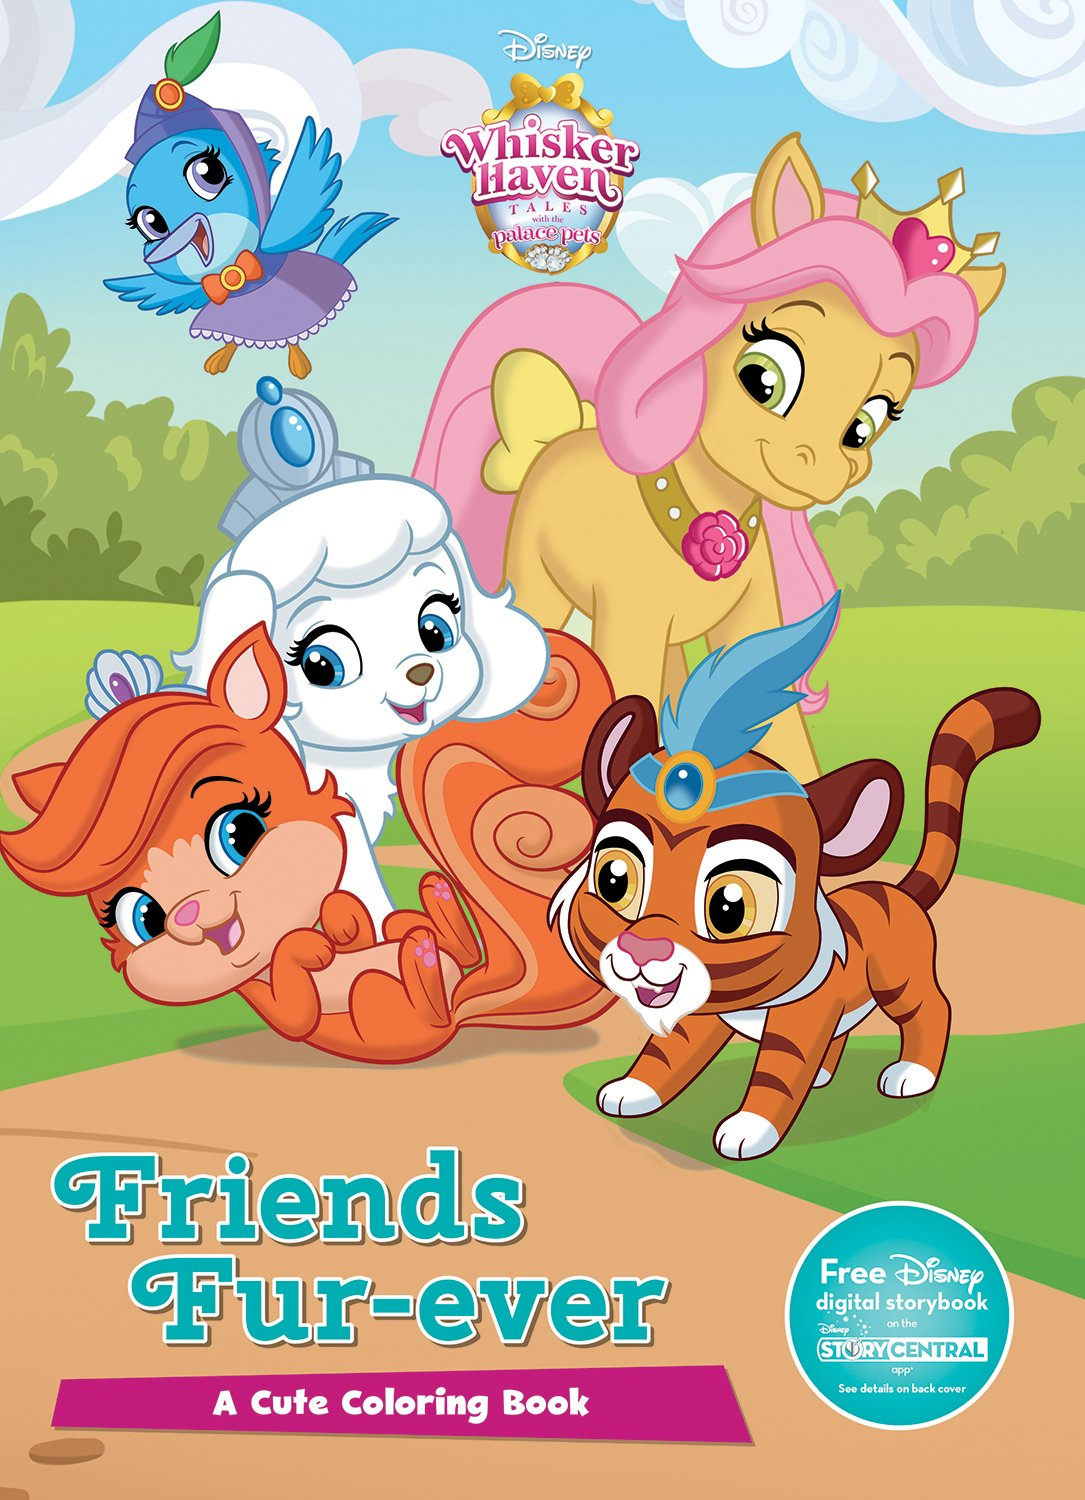 Disney Whisker Haven Friends Fur Ever Color It Whisker Haven Tales With The Palace Pets Parragon Books Ltd 9781474839600 Amazon Com Books